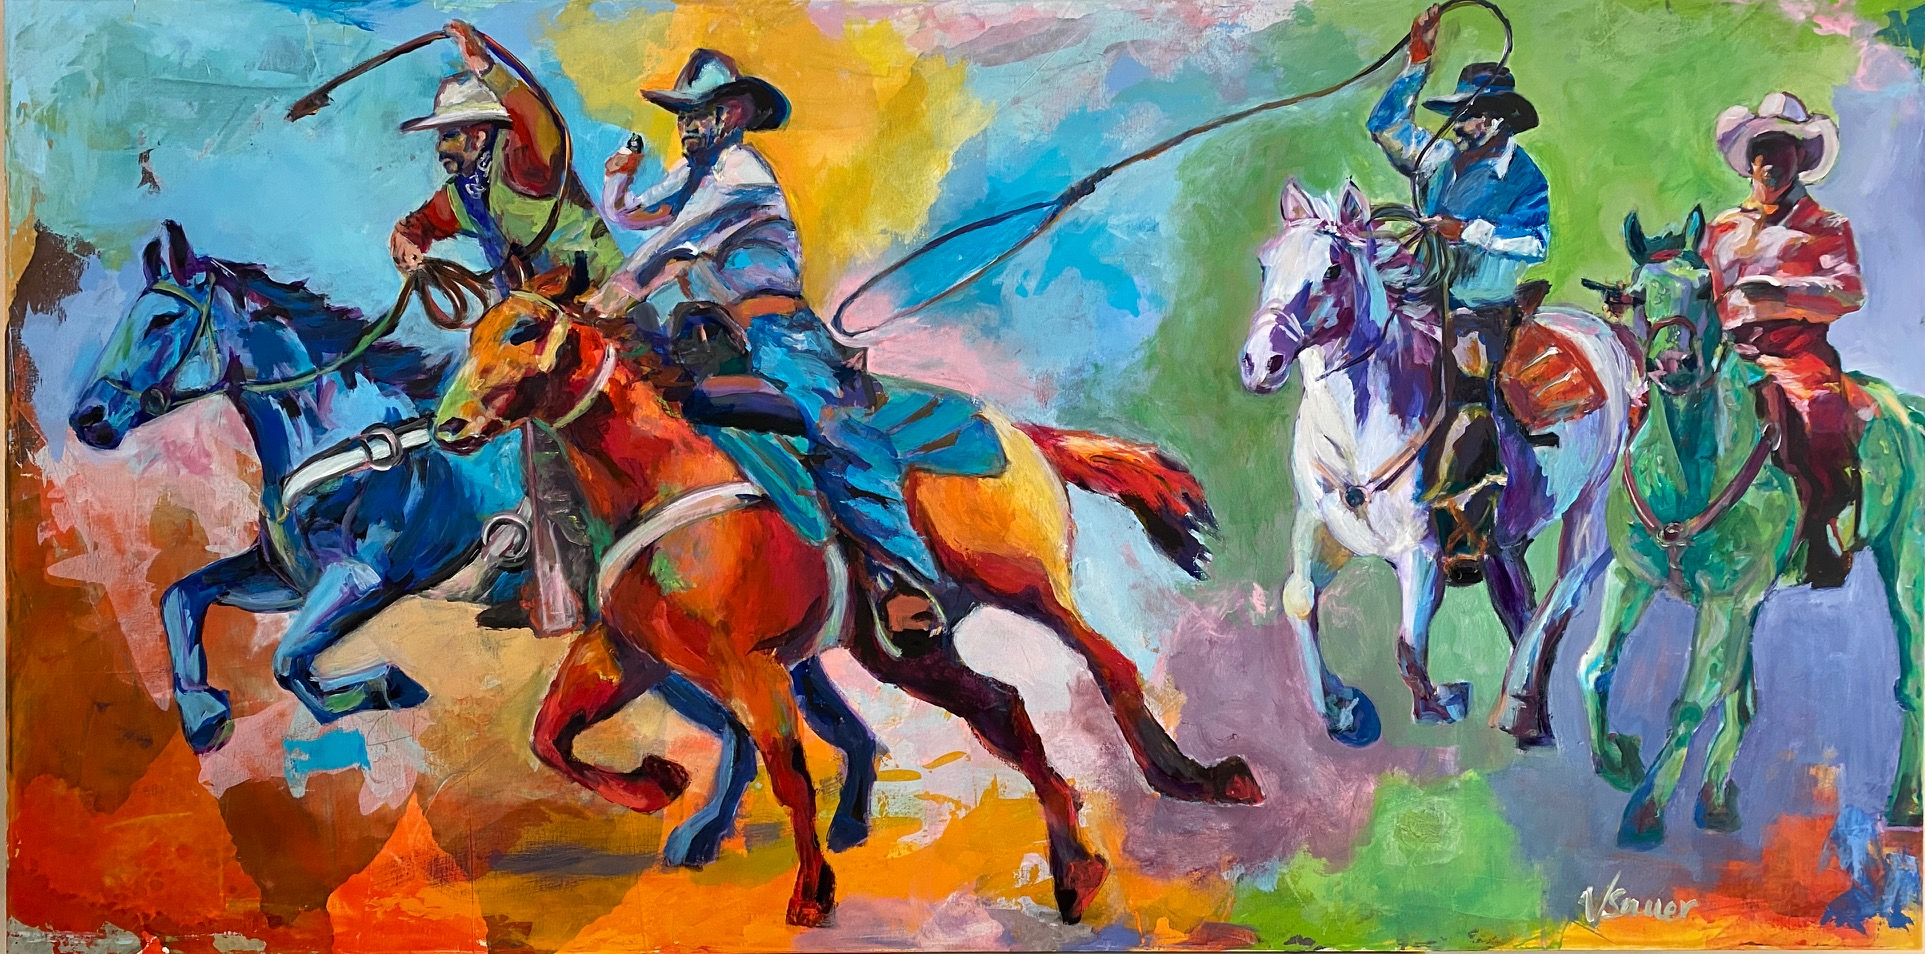 Four Horsemen of the Apocalypse American Outlaw style